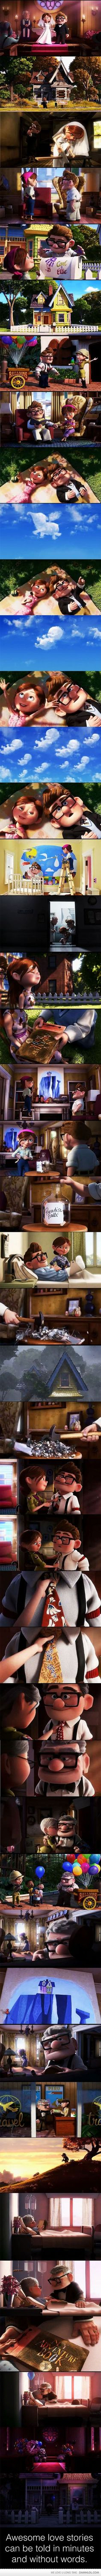 A love story, from Up....gets me every time